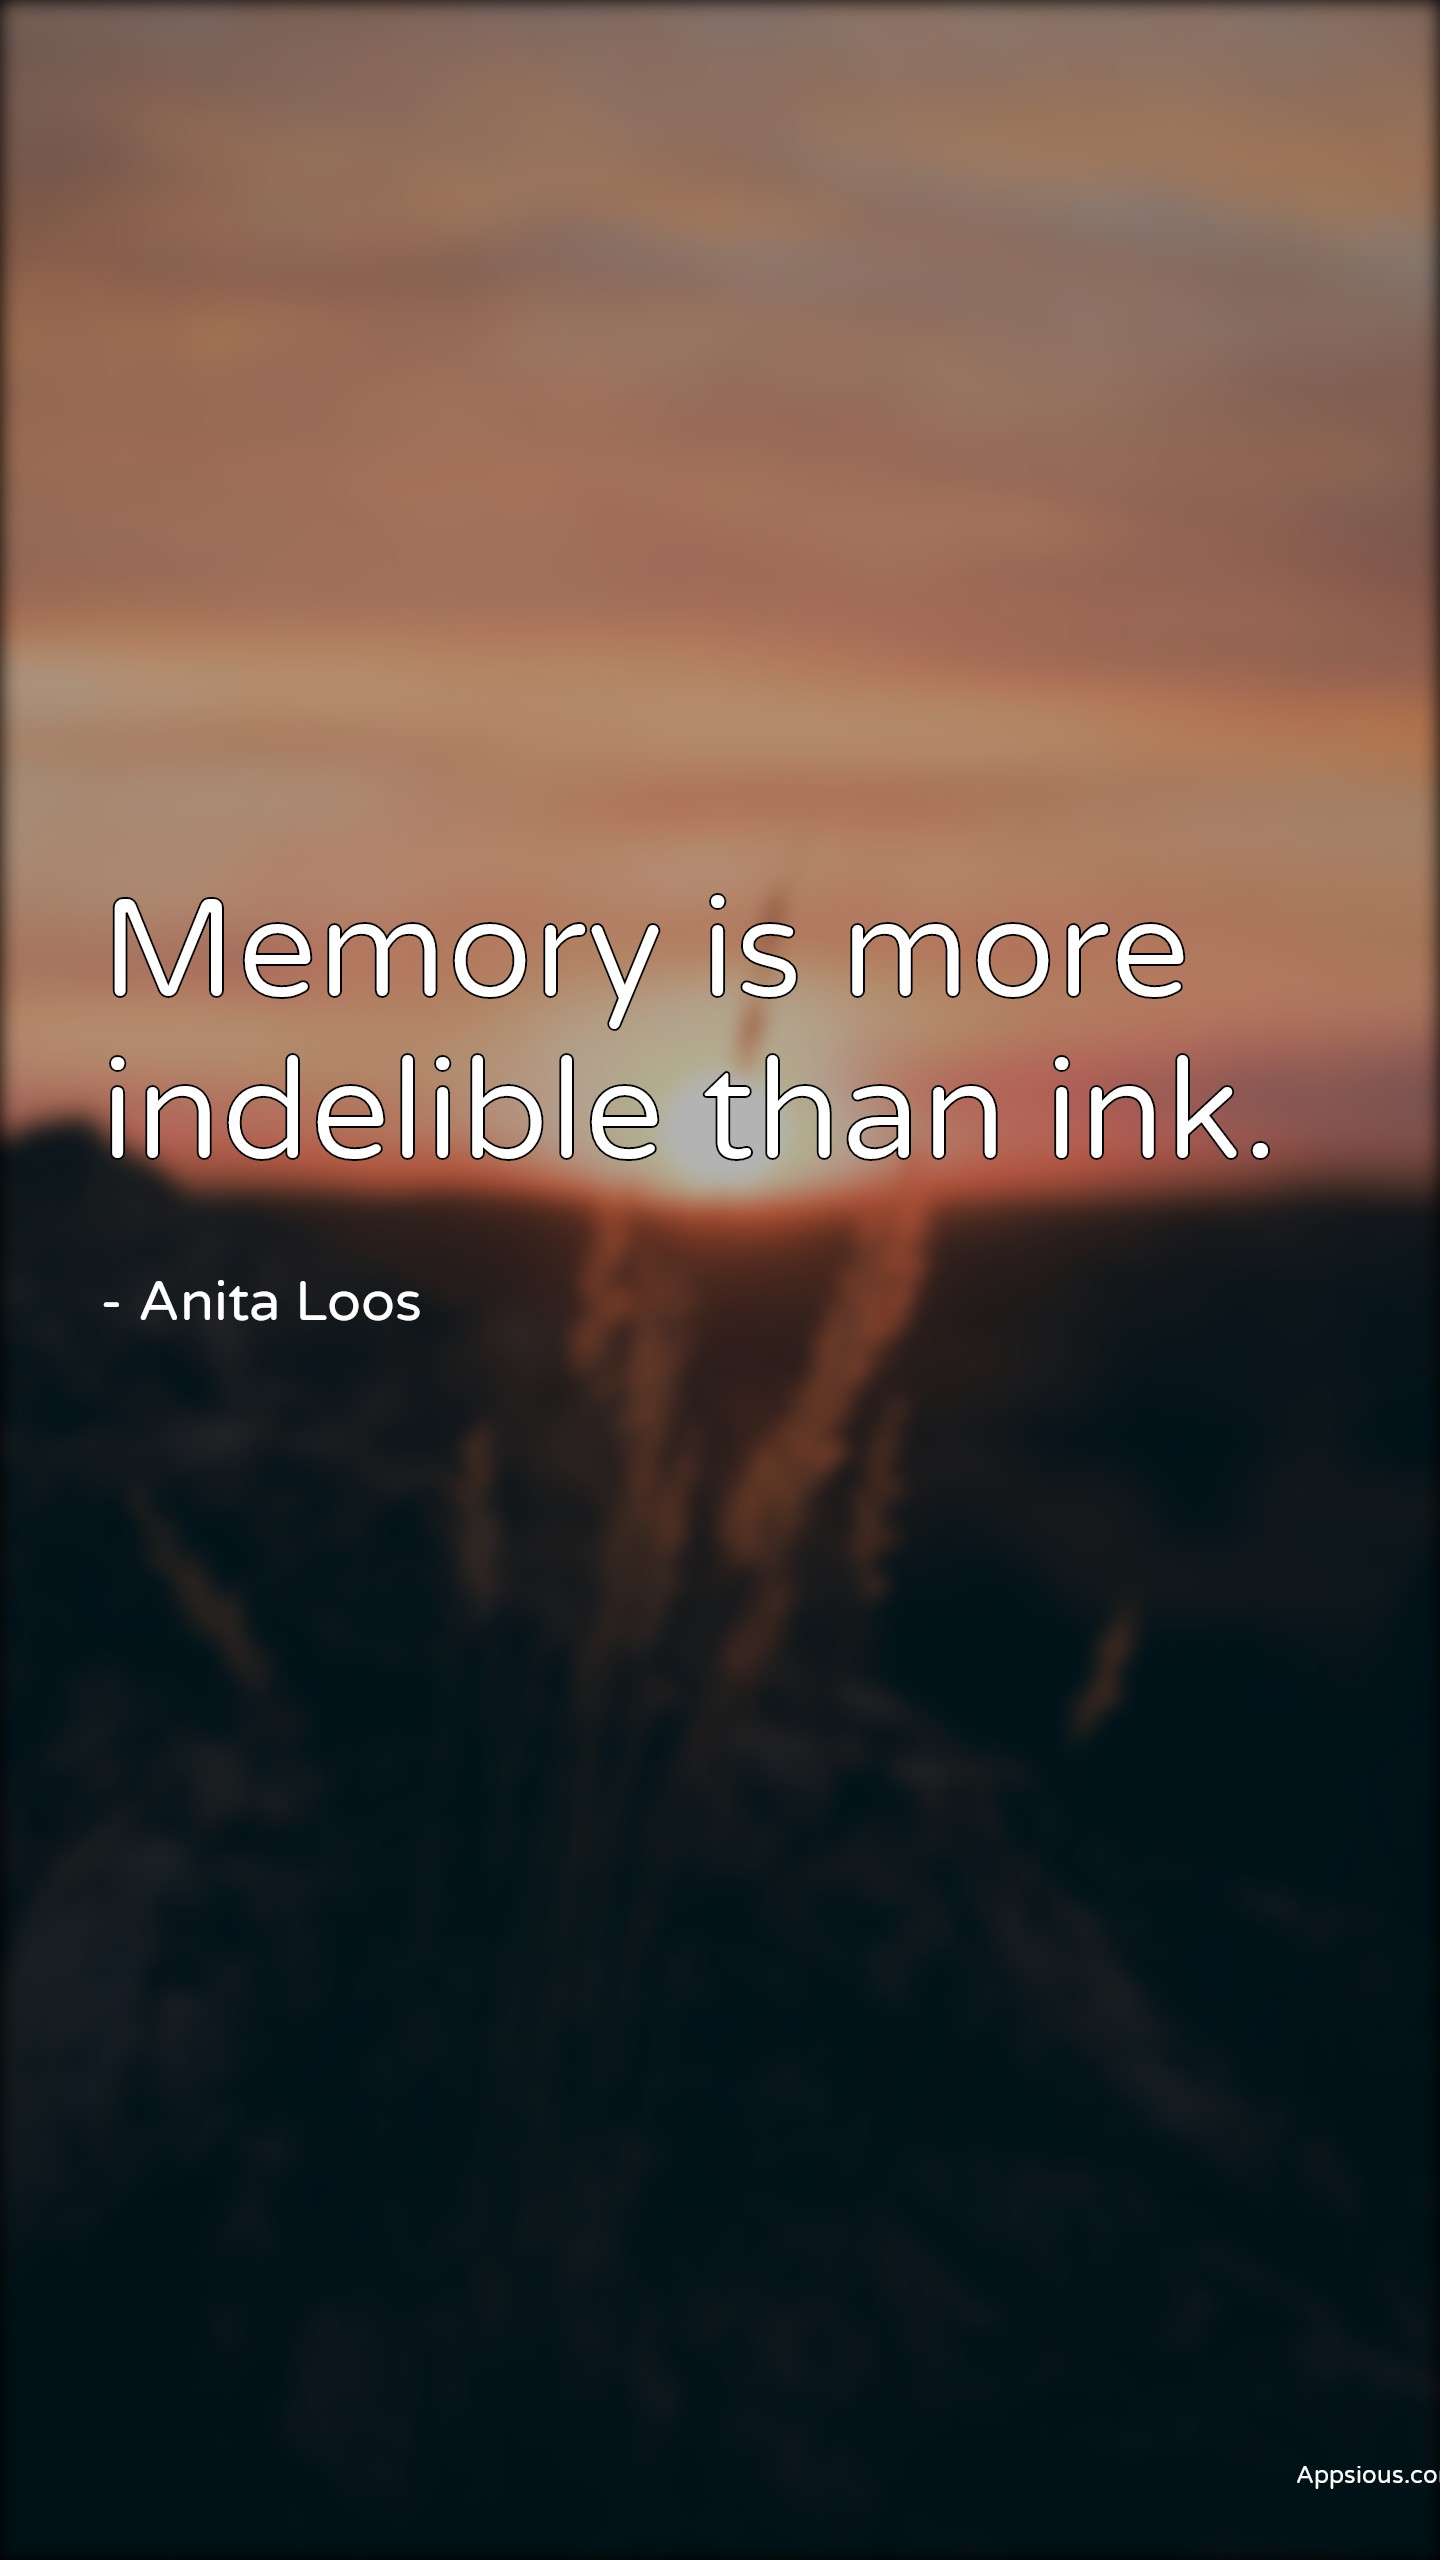 Memory is more indelible than ink.